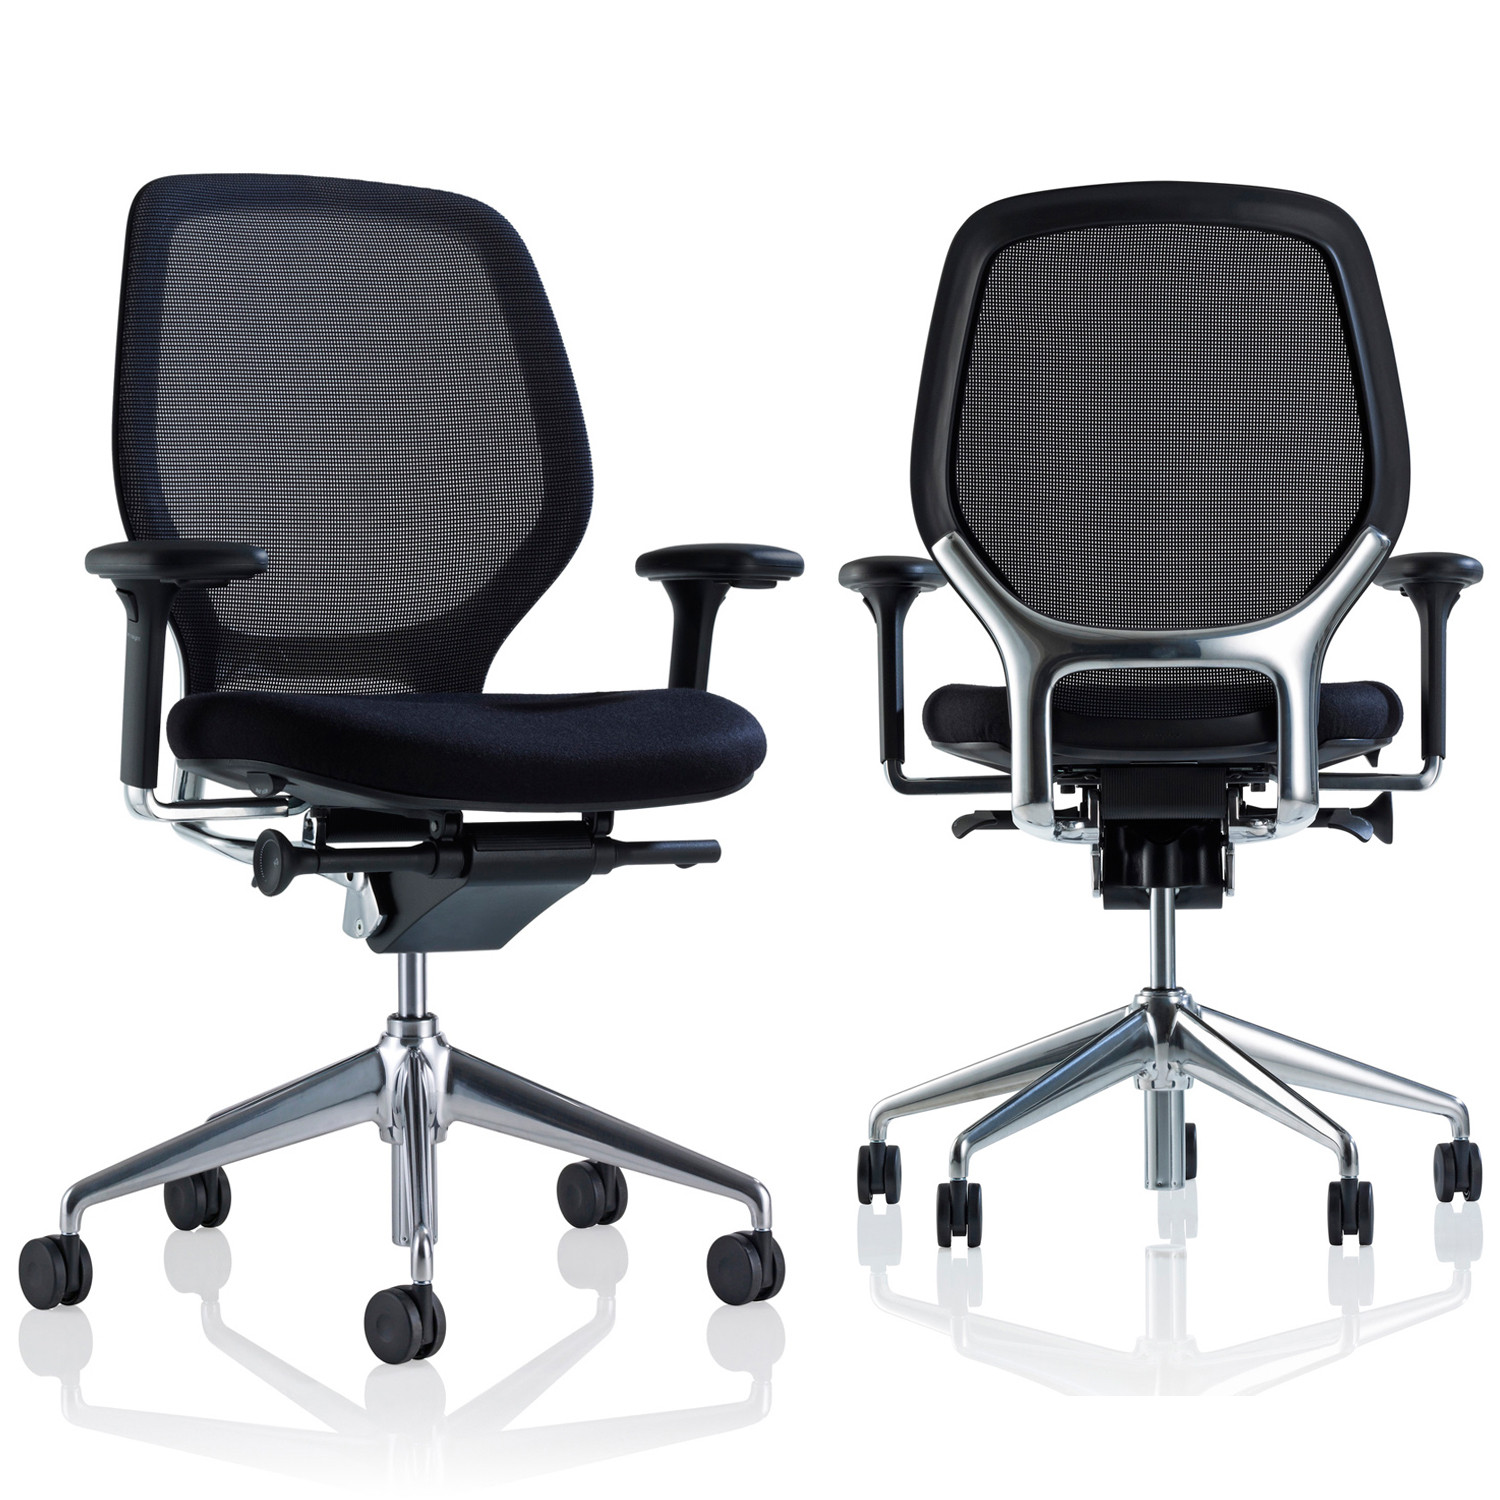 Chair Furniture Ara Mesh Task Chairs Office Seating Apres Furniture